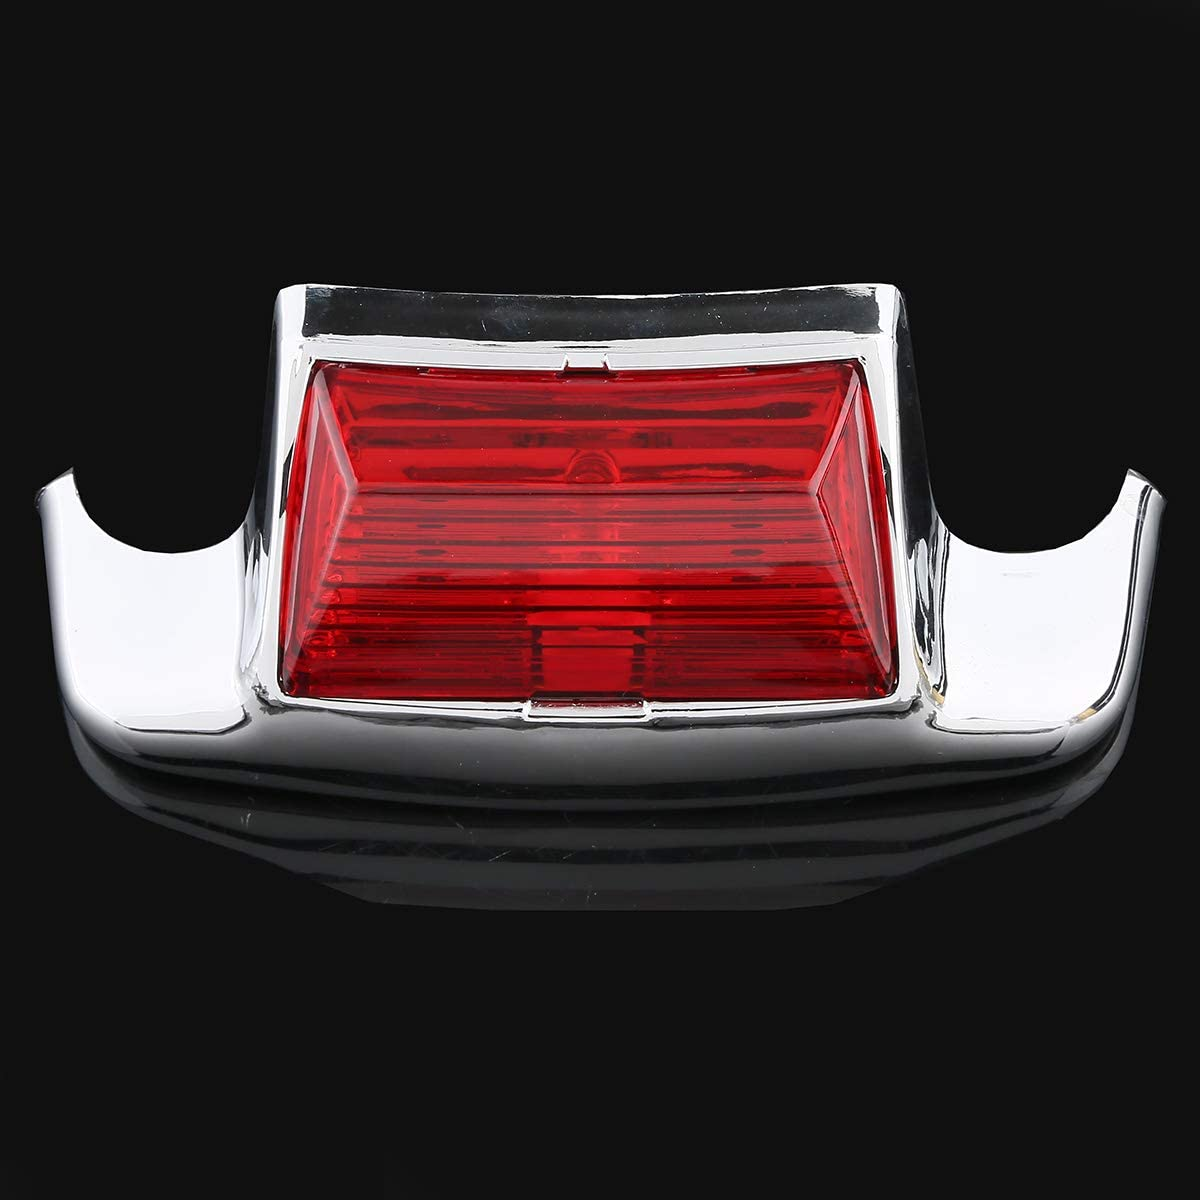 XFMT Red Lens Rear Fender Tip LED Light For Harley Electra Glide 1980-2013 Heritage Softail Classic FLSTC 1986-2008